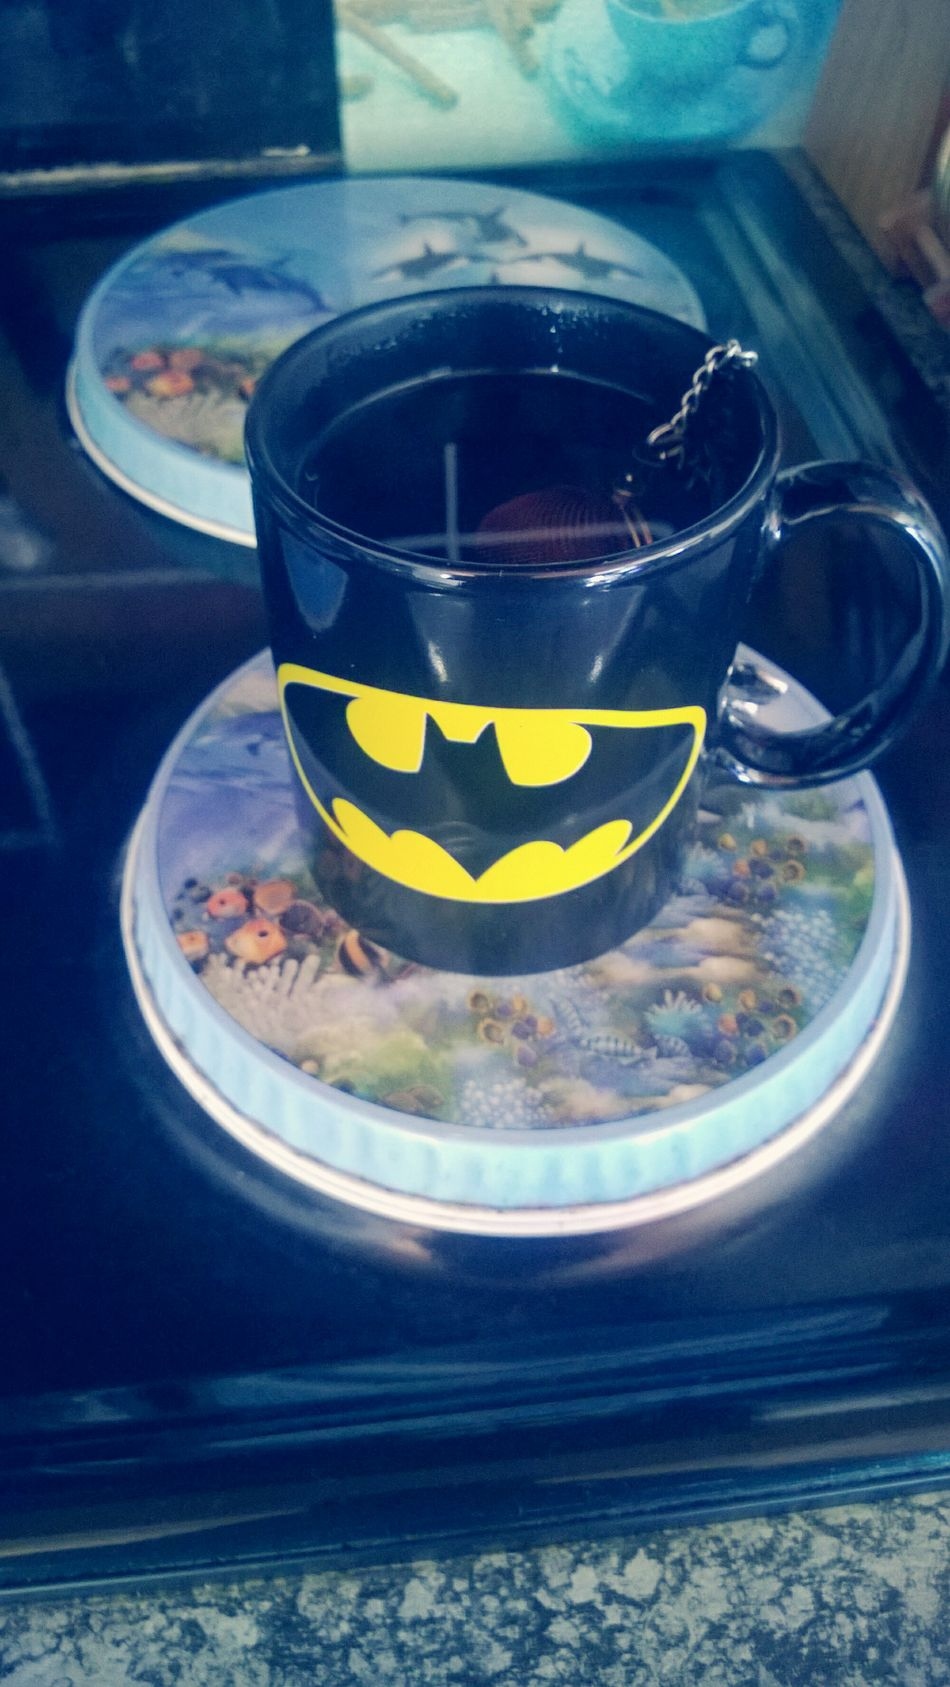 Batman Muglove Drinkingtea